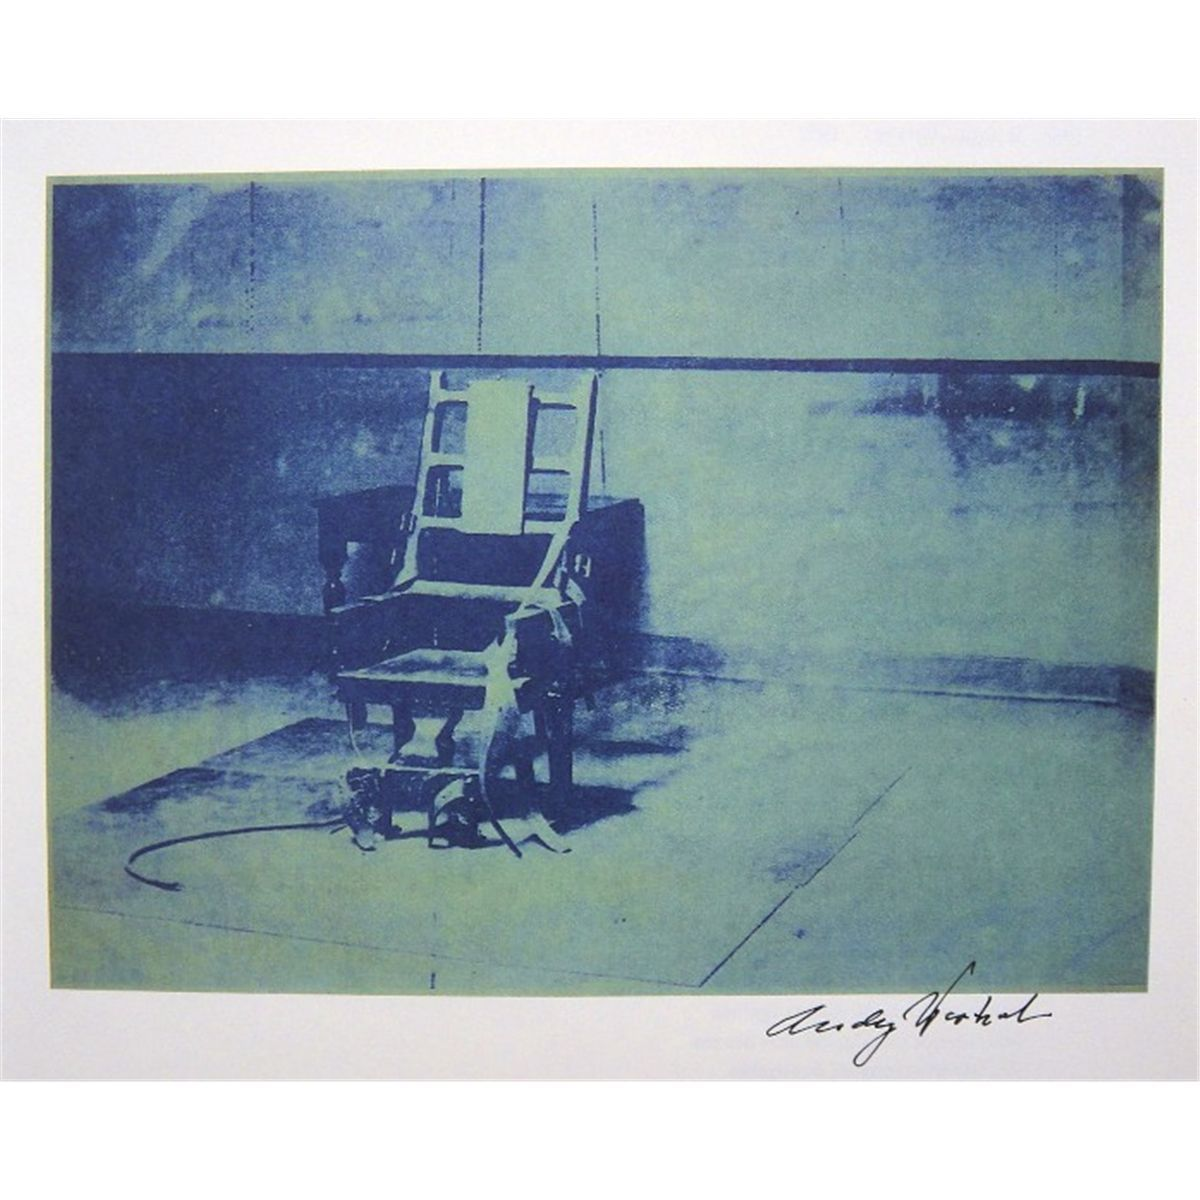 Electric chair andy warhol - Andy Warhol Signed Print Electric Chair